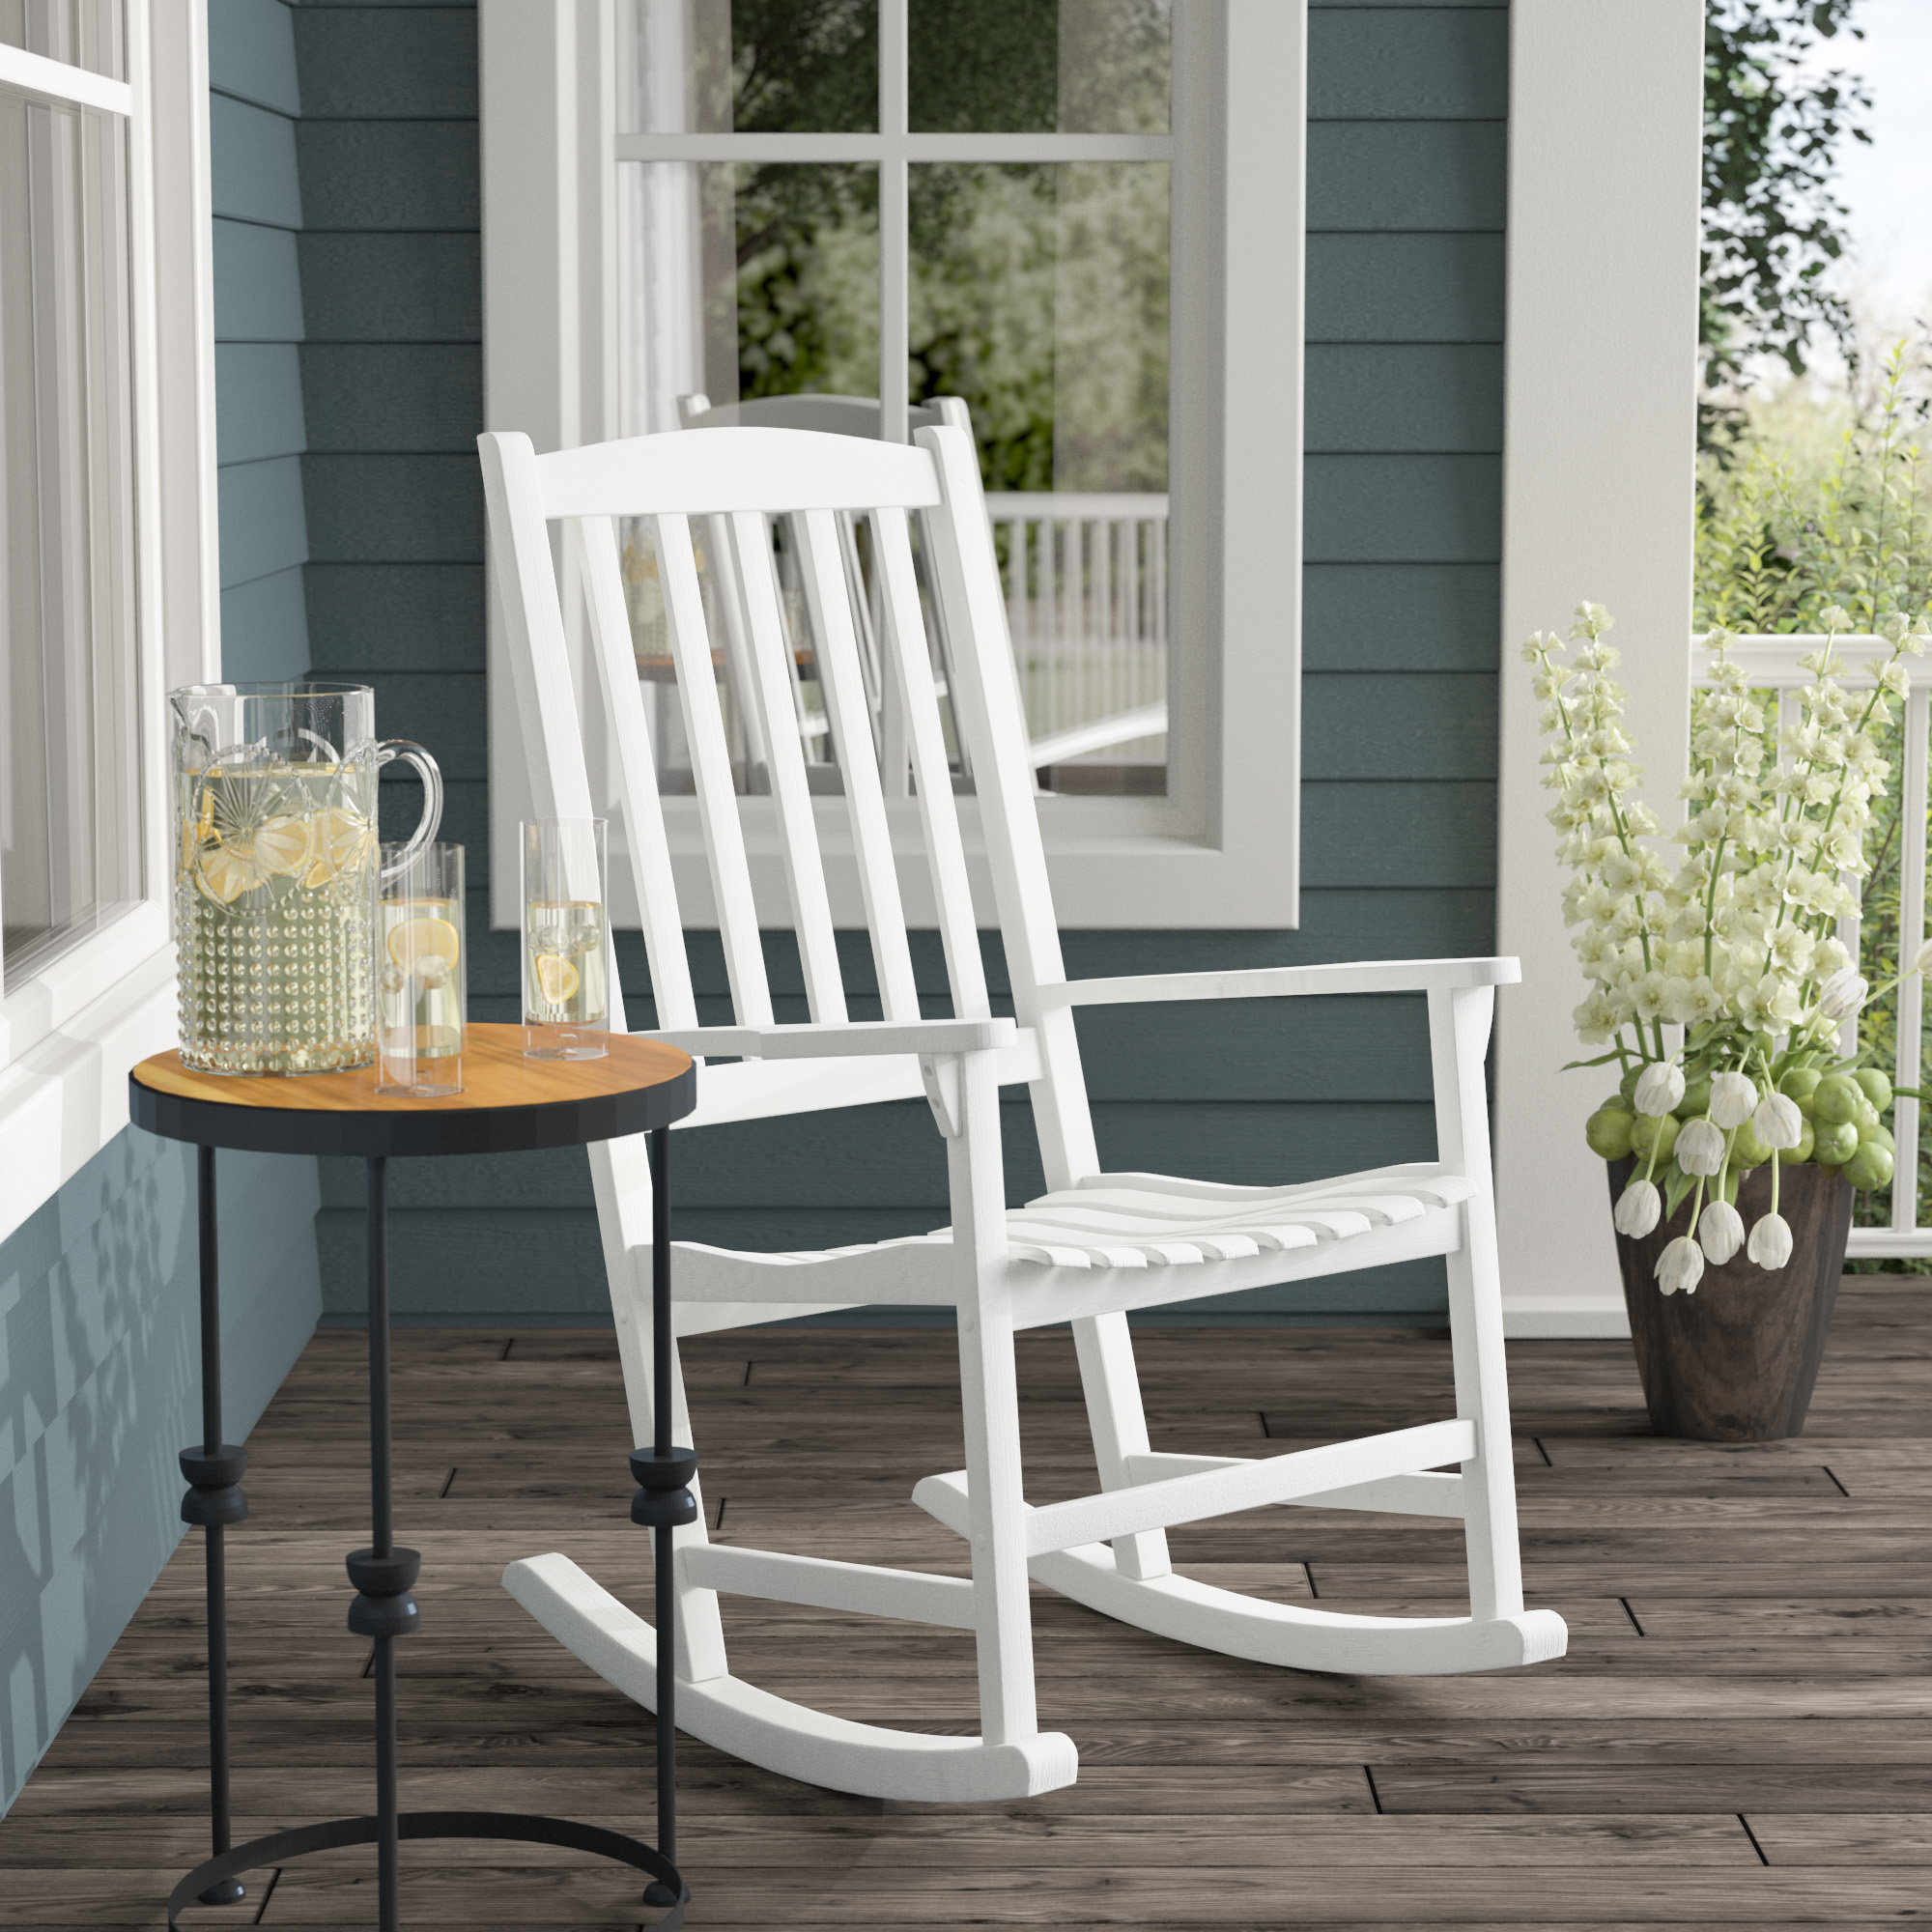 High Back Rocking Chair You'll Love In 2019 | Wayfair With Regard To Rocking Chairs In Linen Fabric With Brushed Finish Base (#4 of 20)